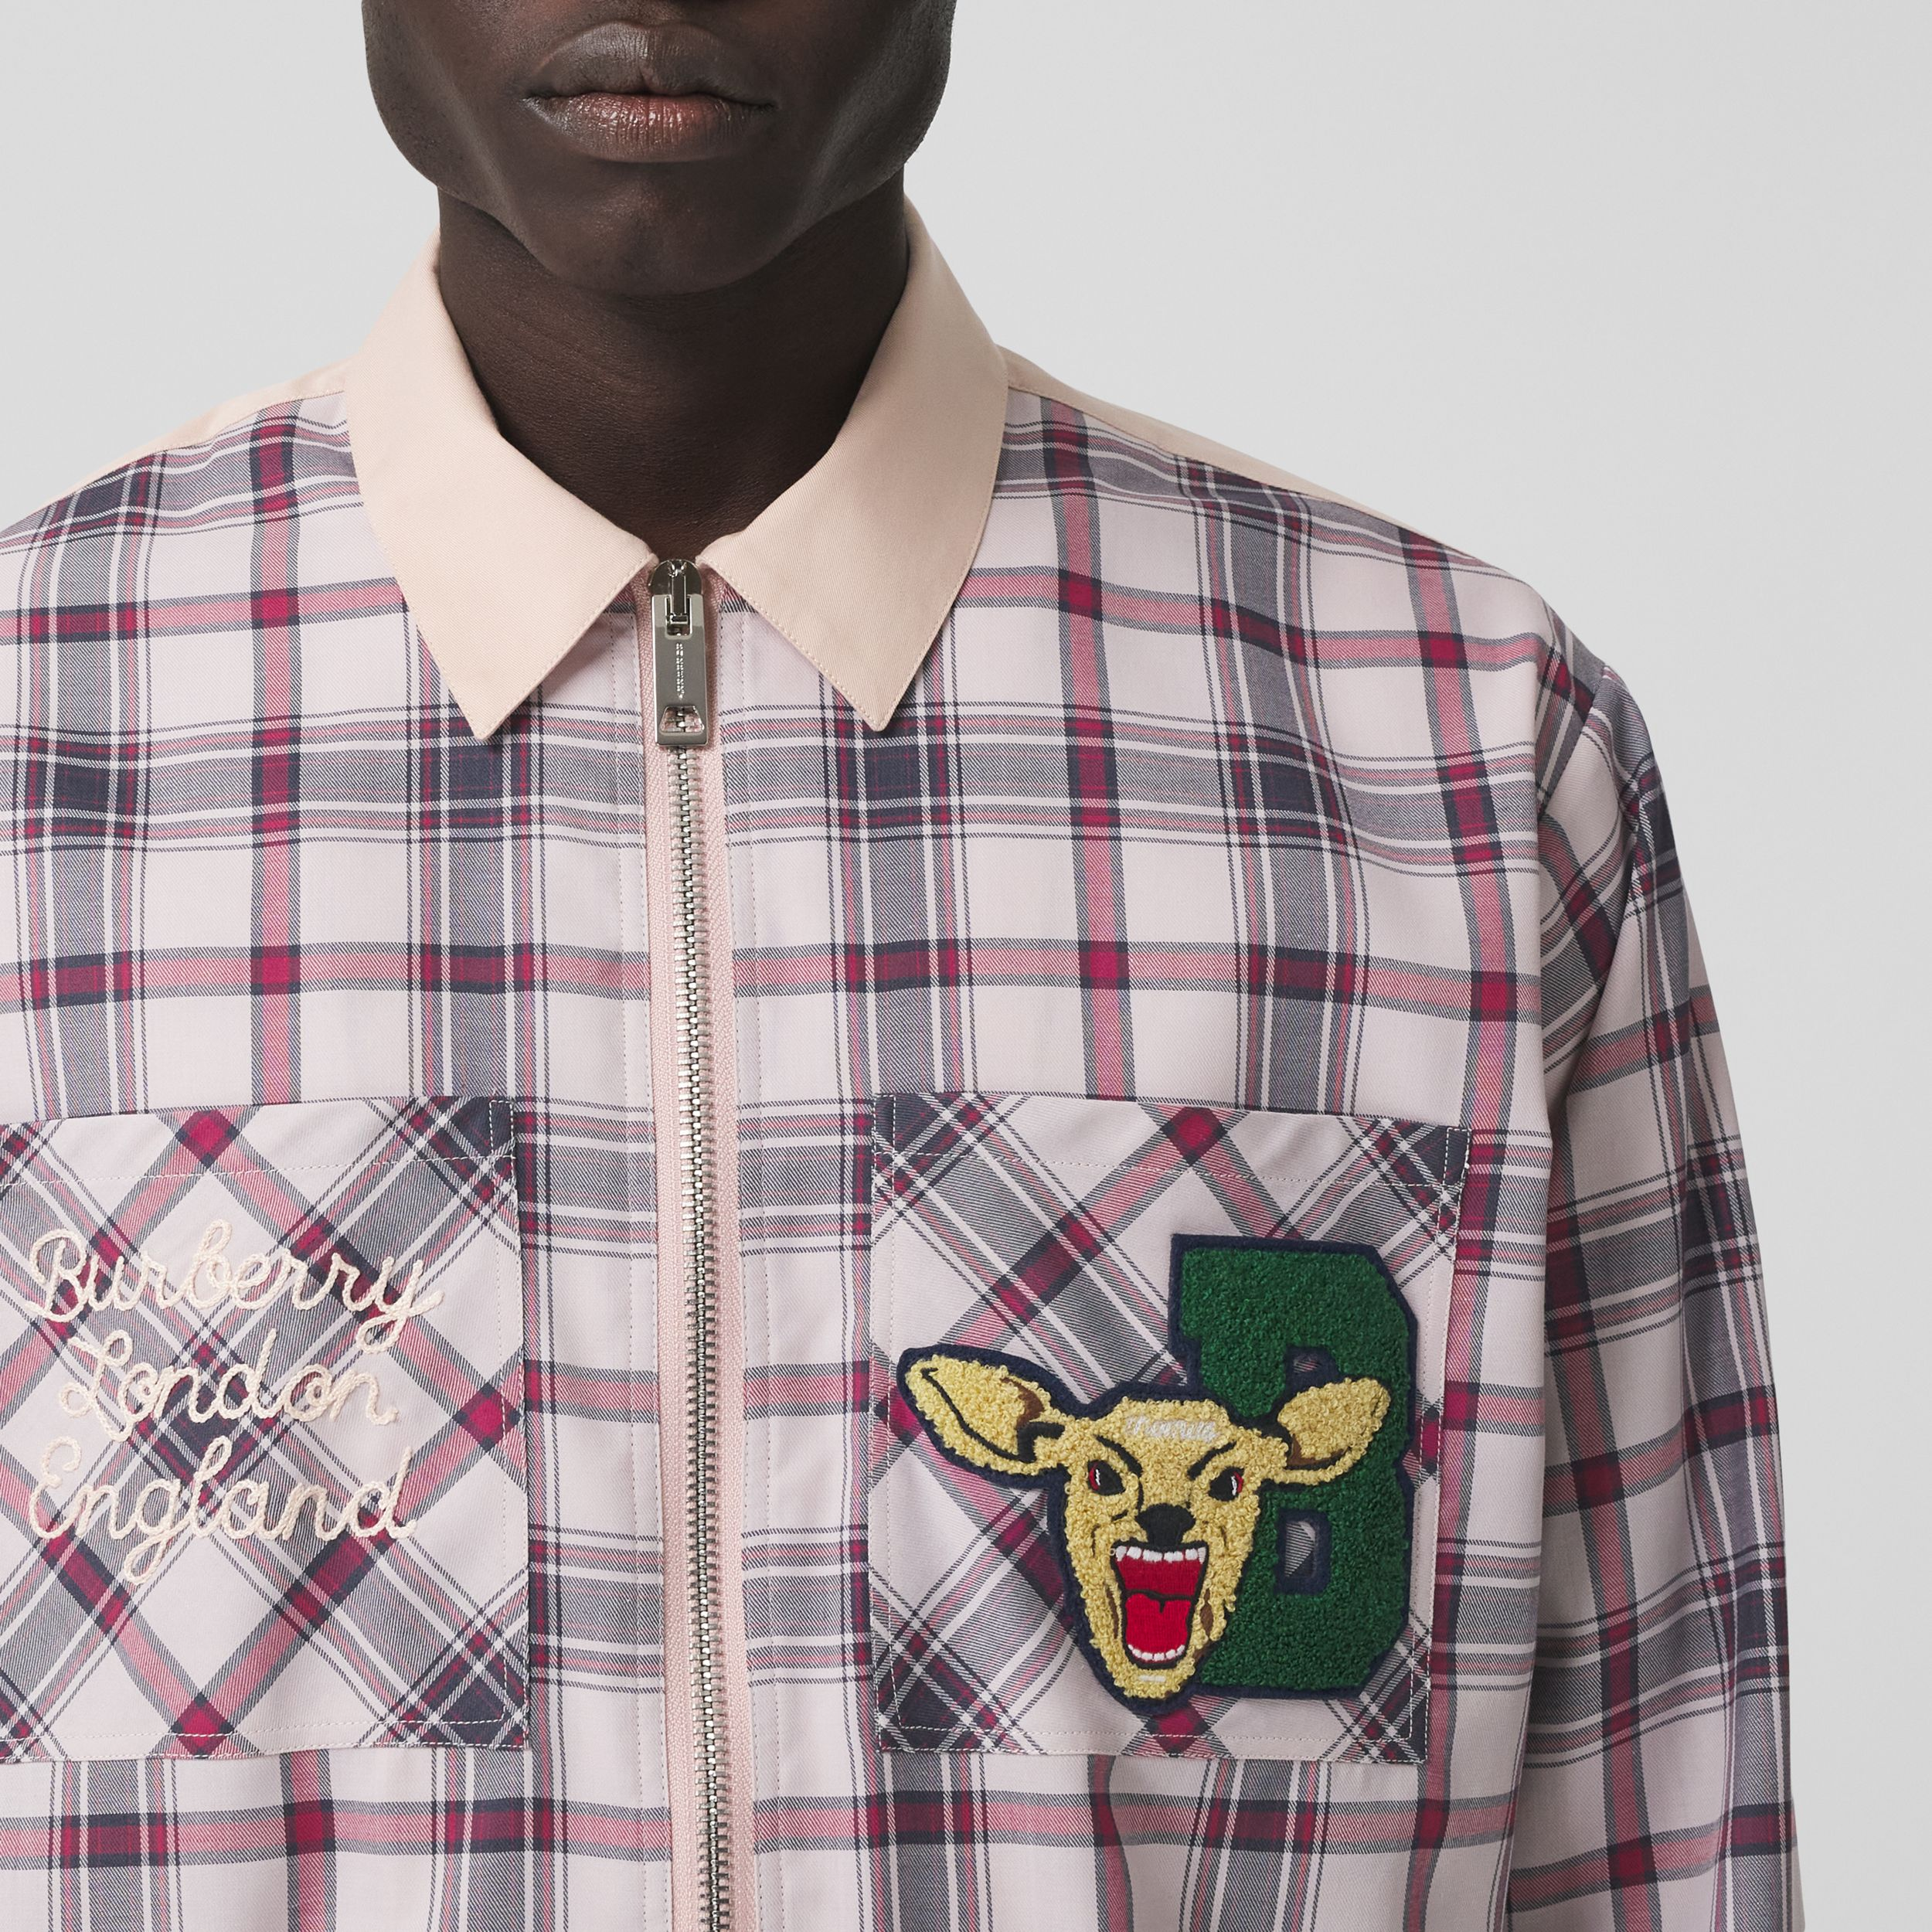 Varsity Graphic Check Technical Cotton Overshirt in Frosted Pink - Men | Burberry Hong Kong S.A.R. - 2